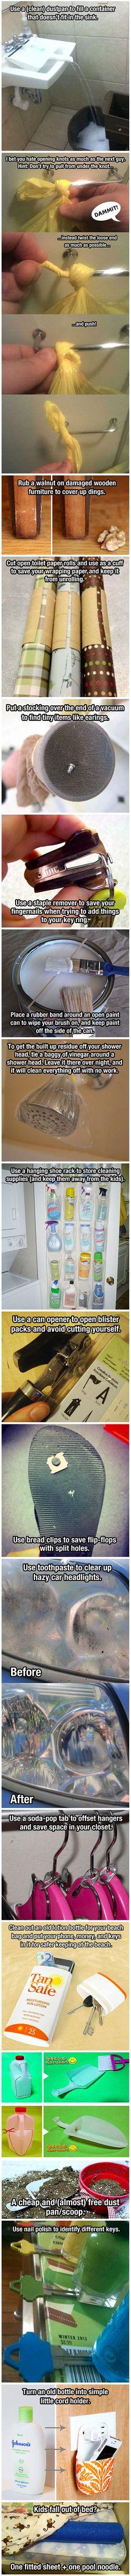 Genius solutions to simple problems that only require normal stuff around the house.